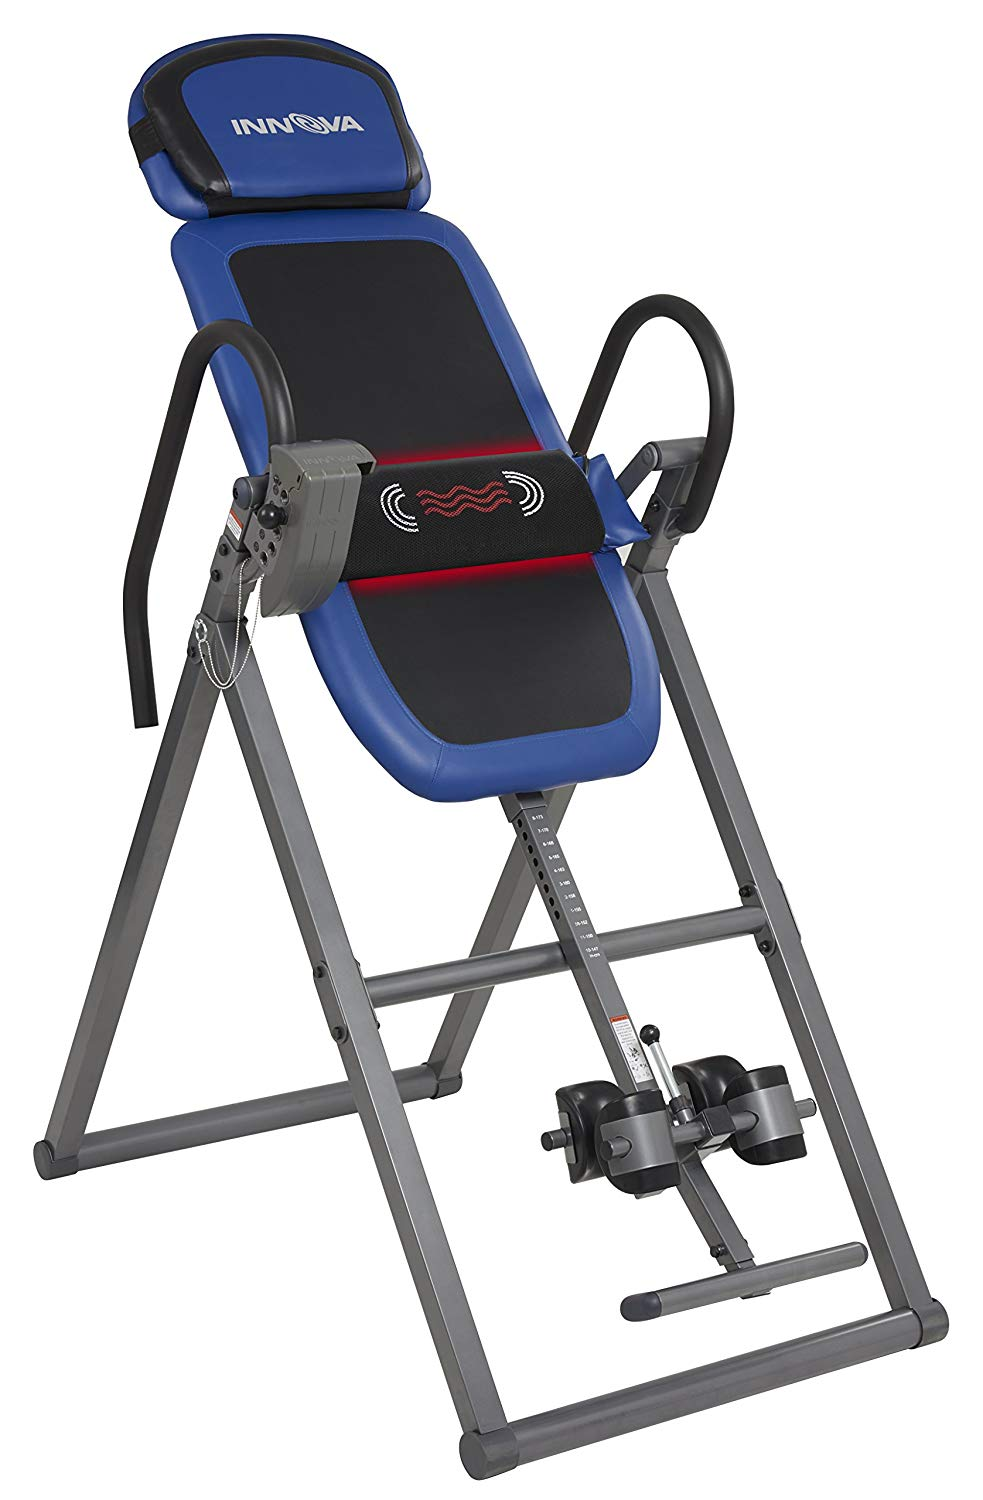 Top 5 Best Inversion Tables of 2018 to Ease Your Back Pain 3